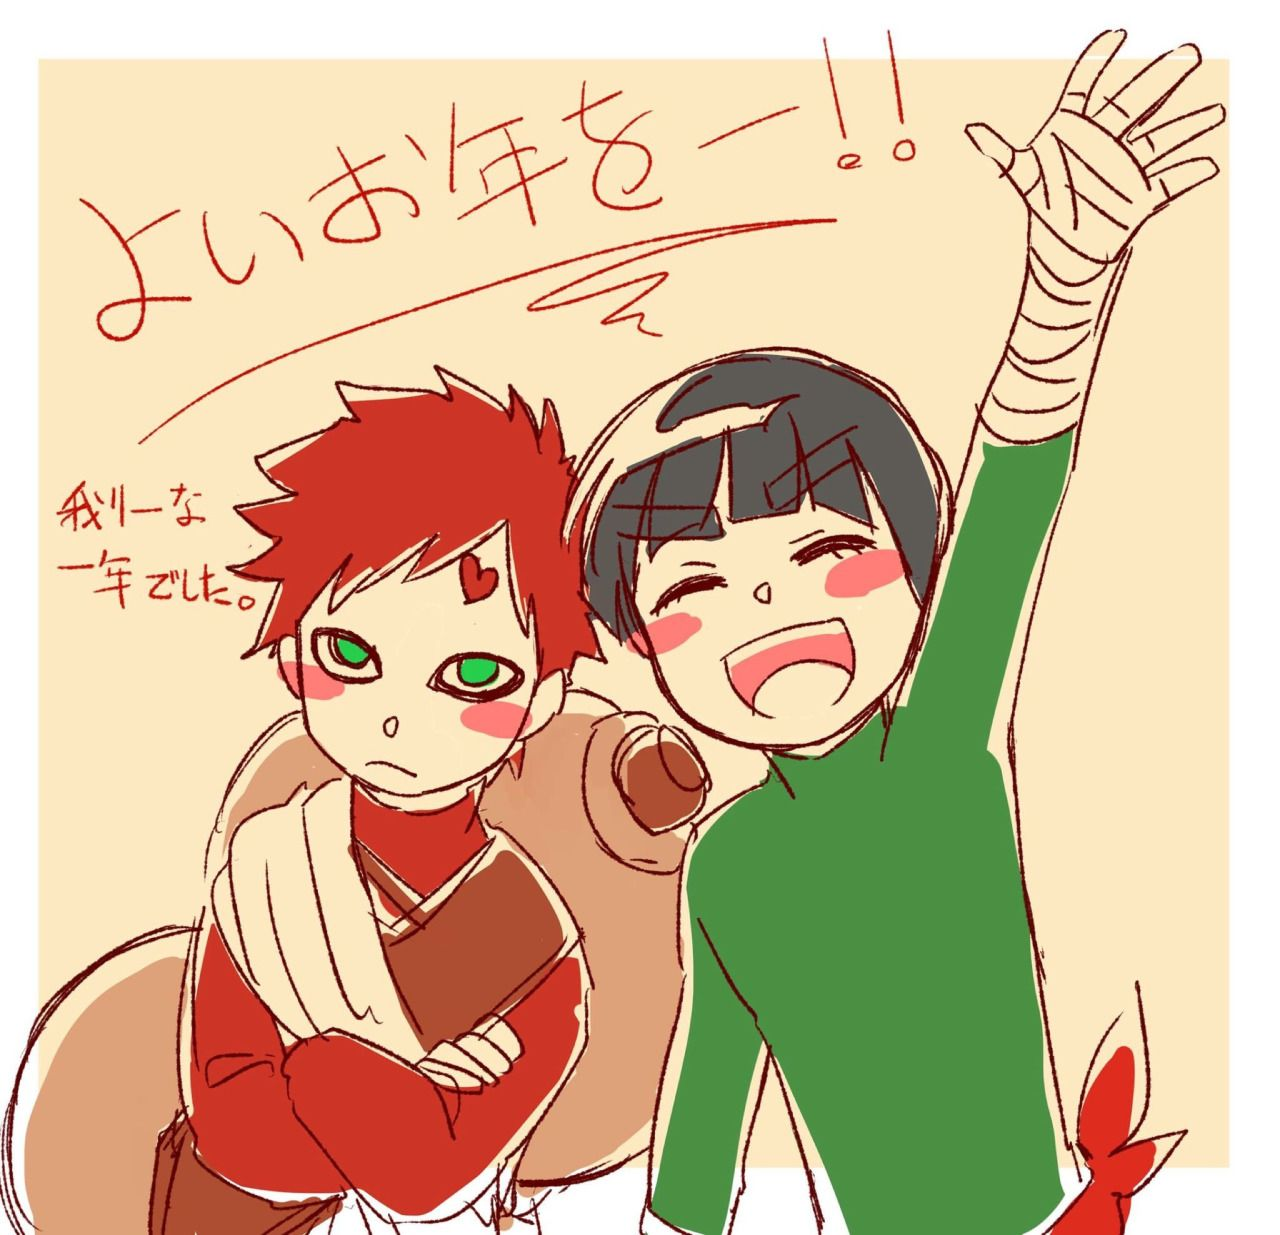 rock lee | Tumblr | Gaara | Naruto, Gaara, Lee naruto Gaara And Rock Lee Yaoi